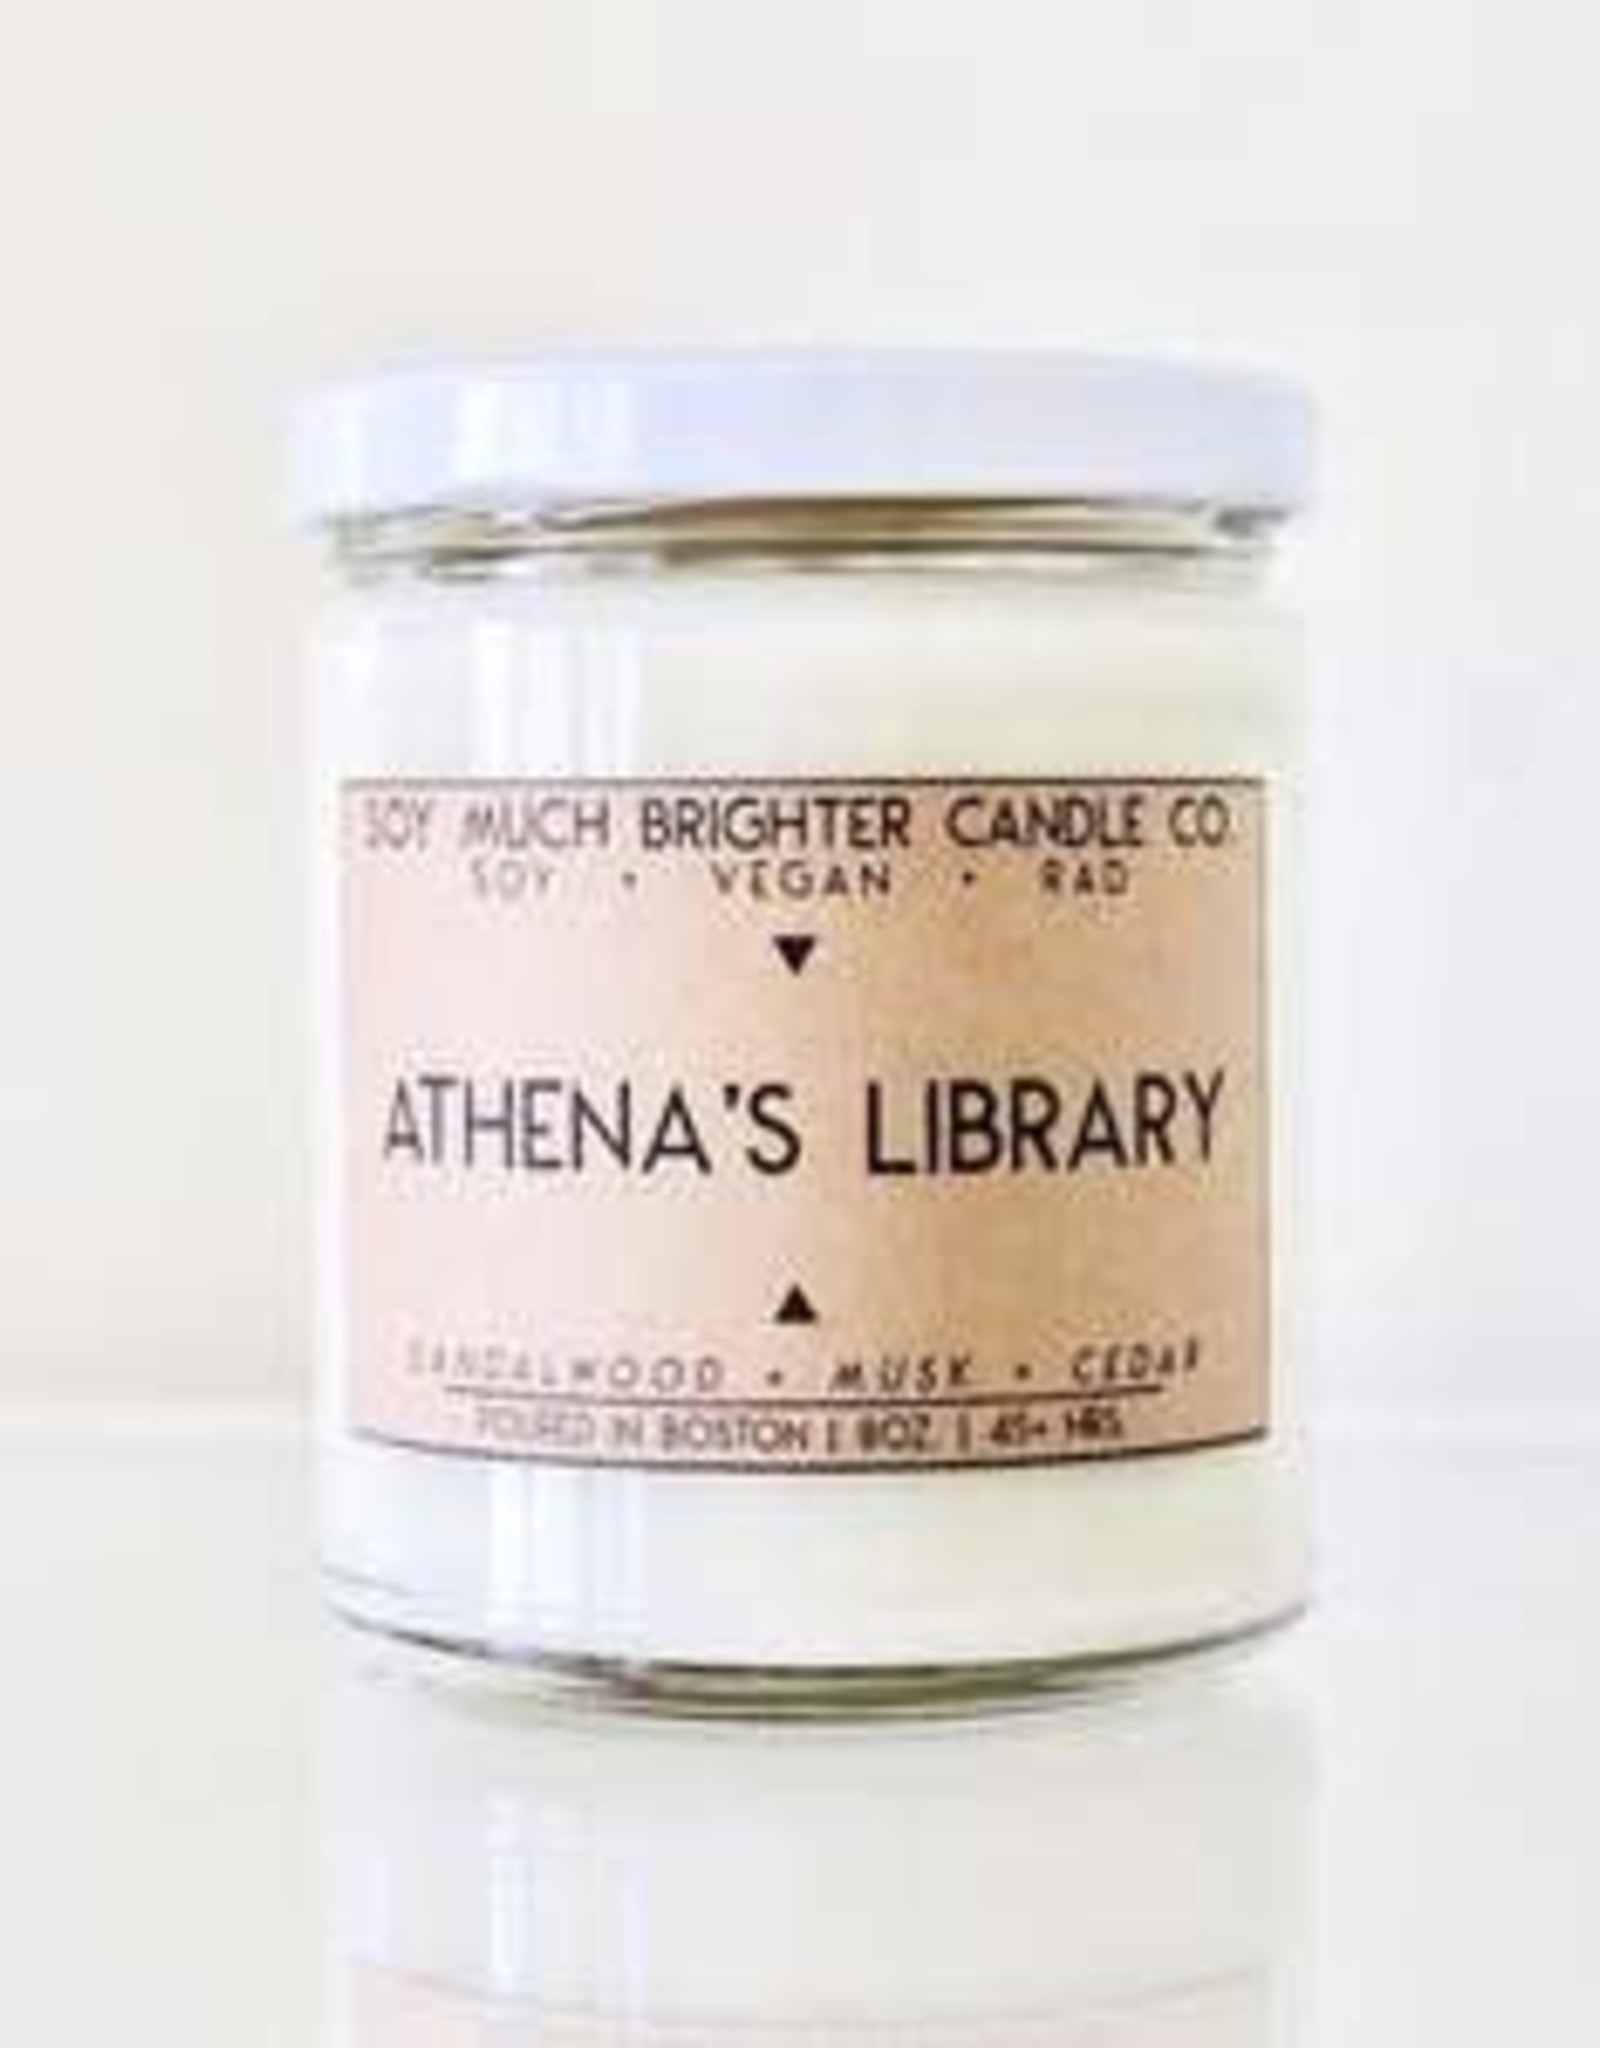 Soy Much Brighter Soy Much Brighter Candle  Athena's Library 8oz